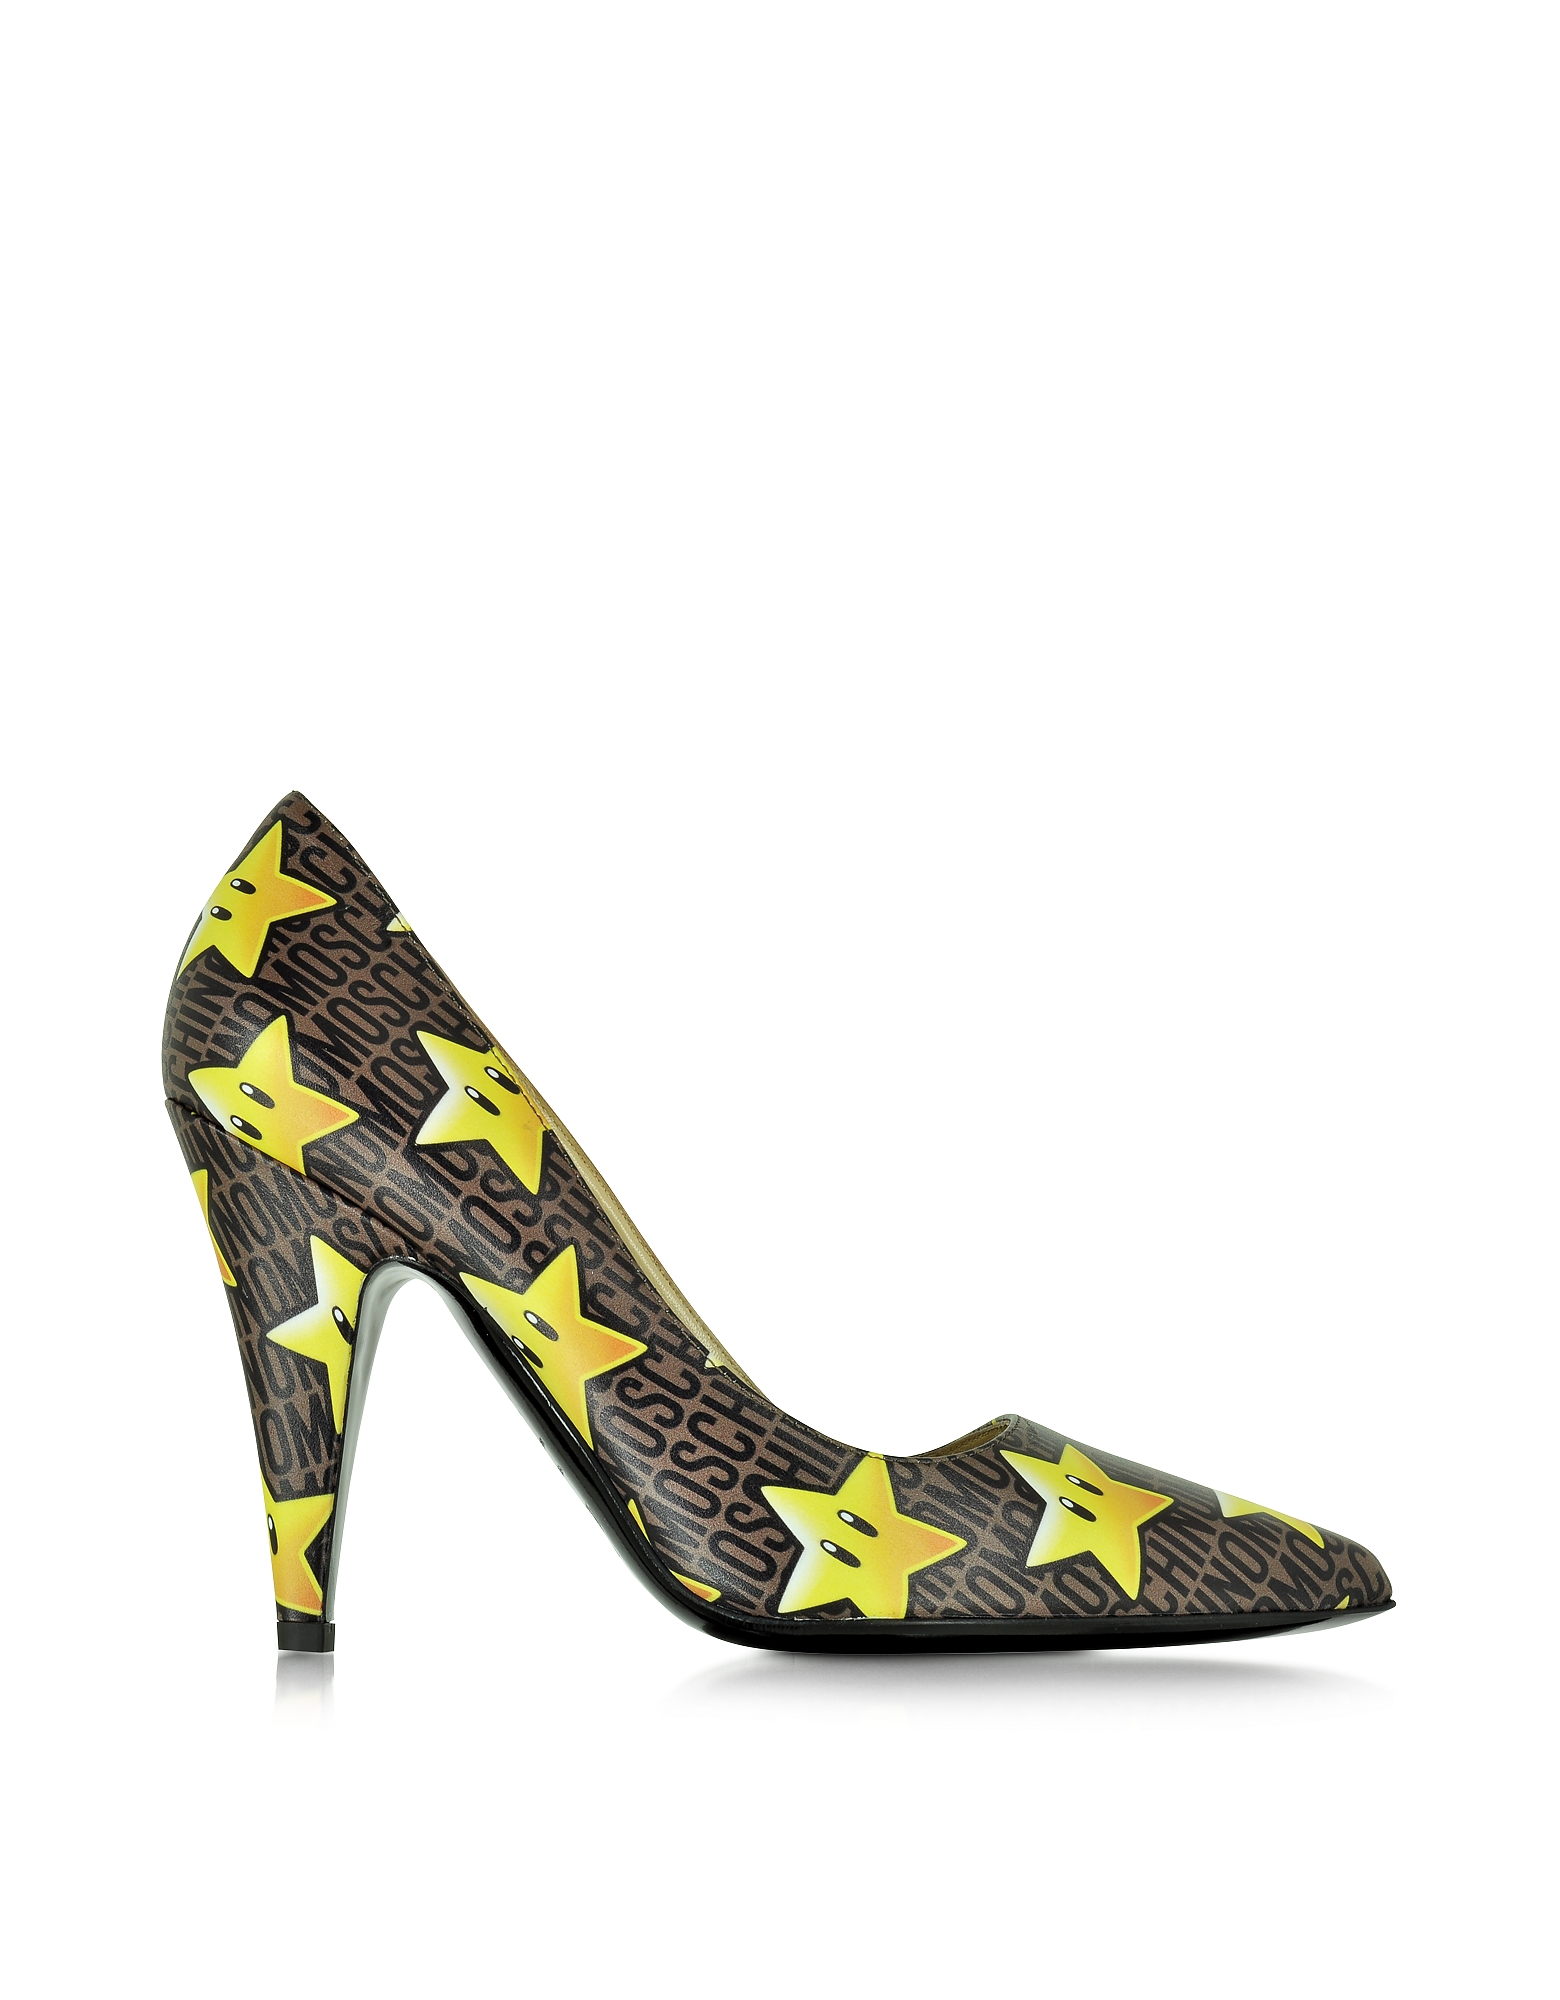 Moschino Shoes, Super Stars Leather Pump